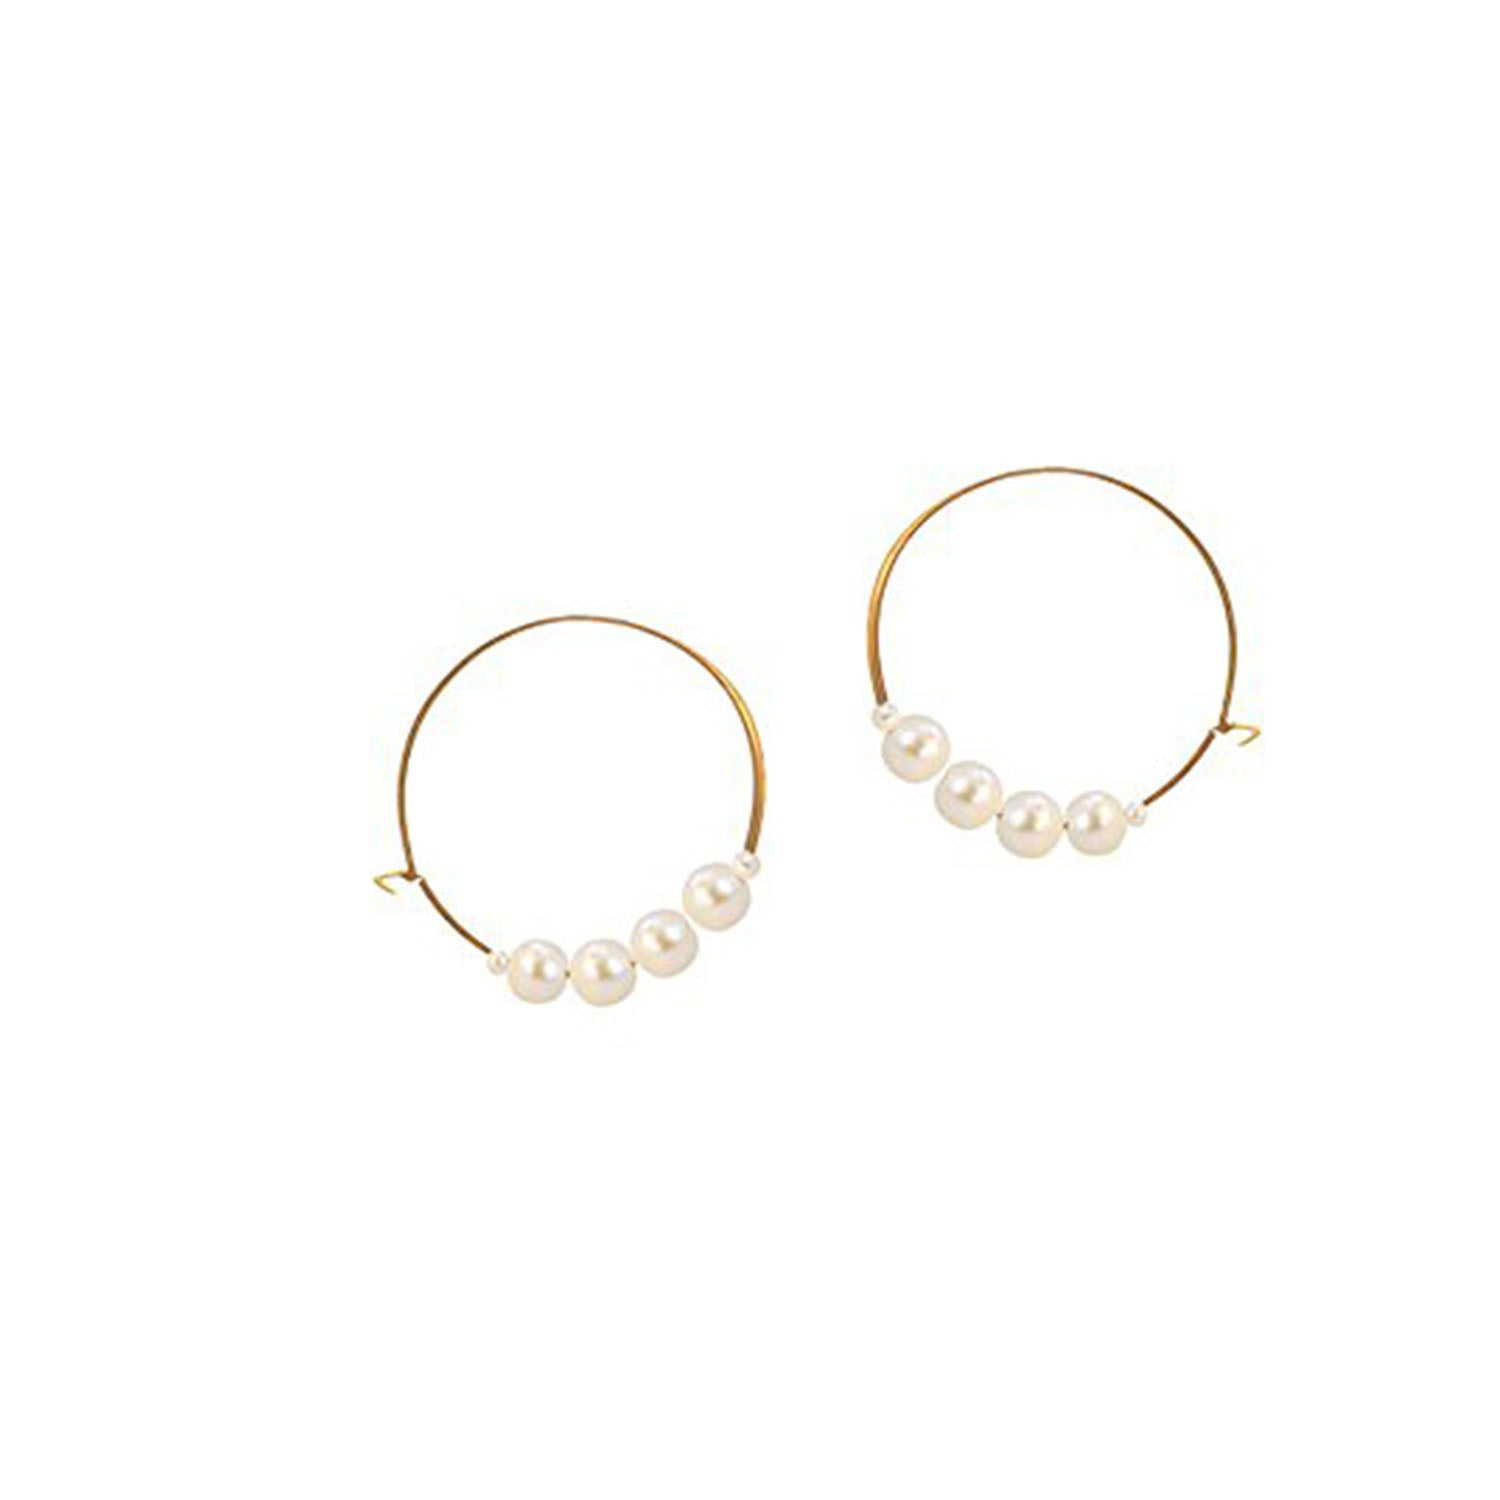 JFL-Cream Gold Plated Pearl Designer Bali Earrings for Women